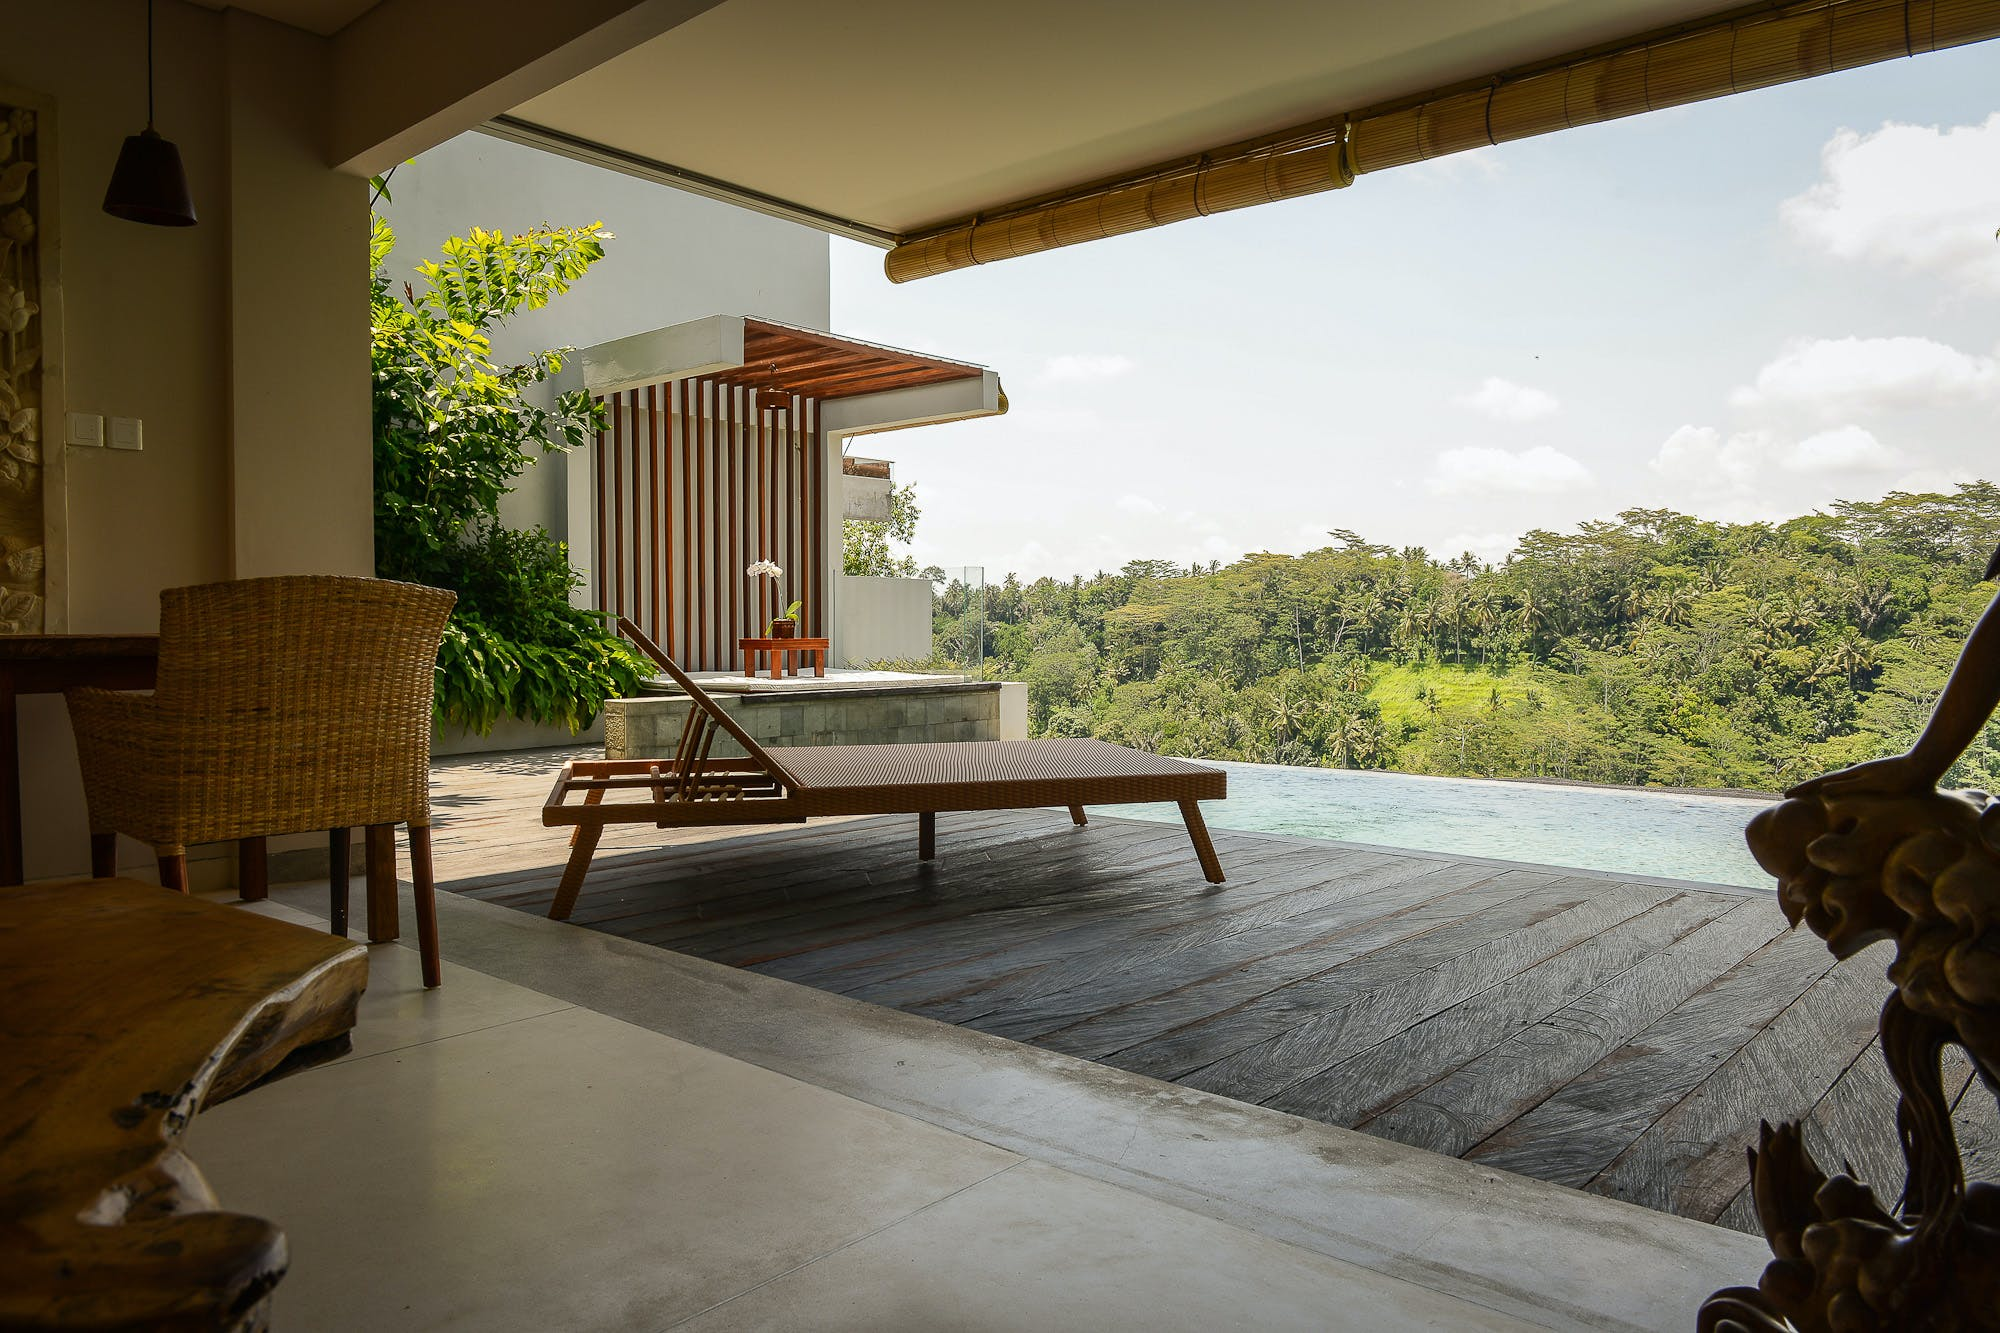 ayuterra rama sita private pool sundeck